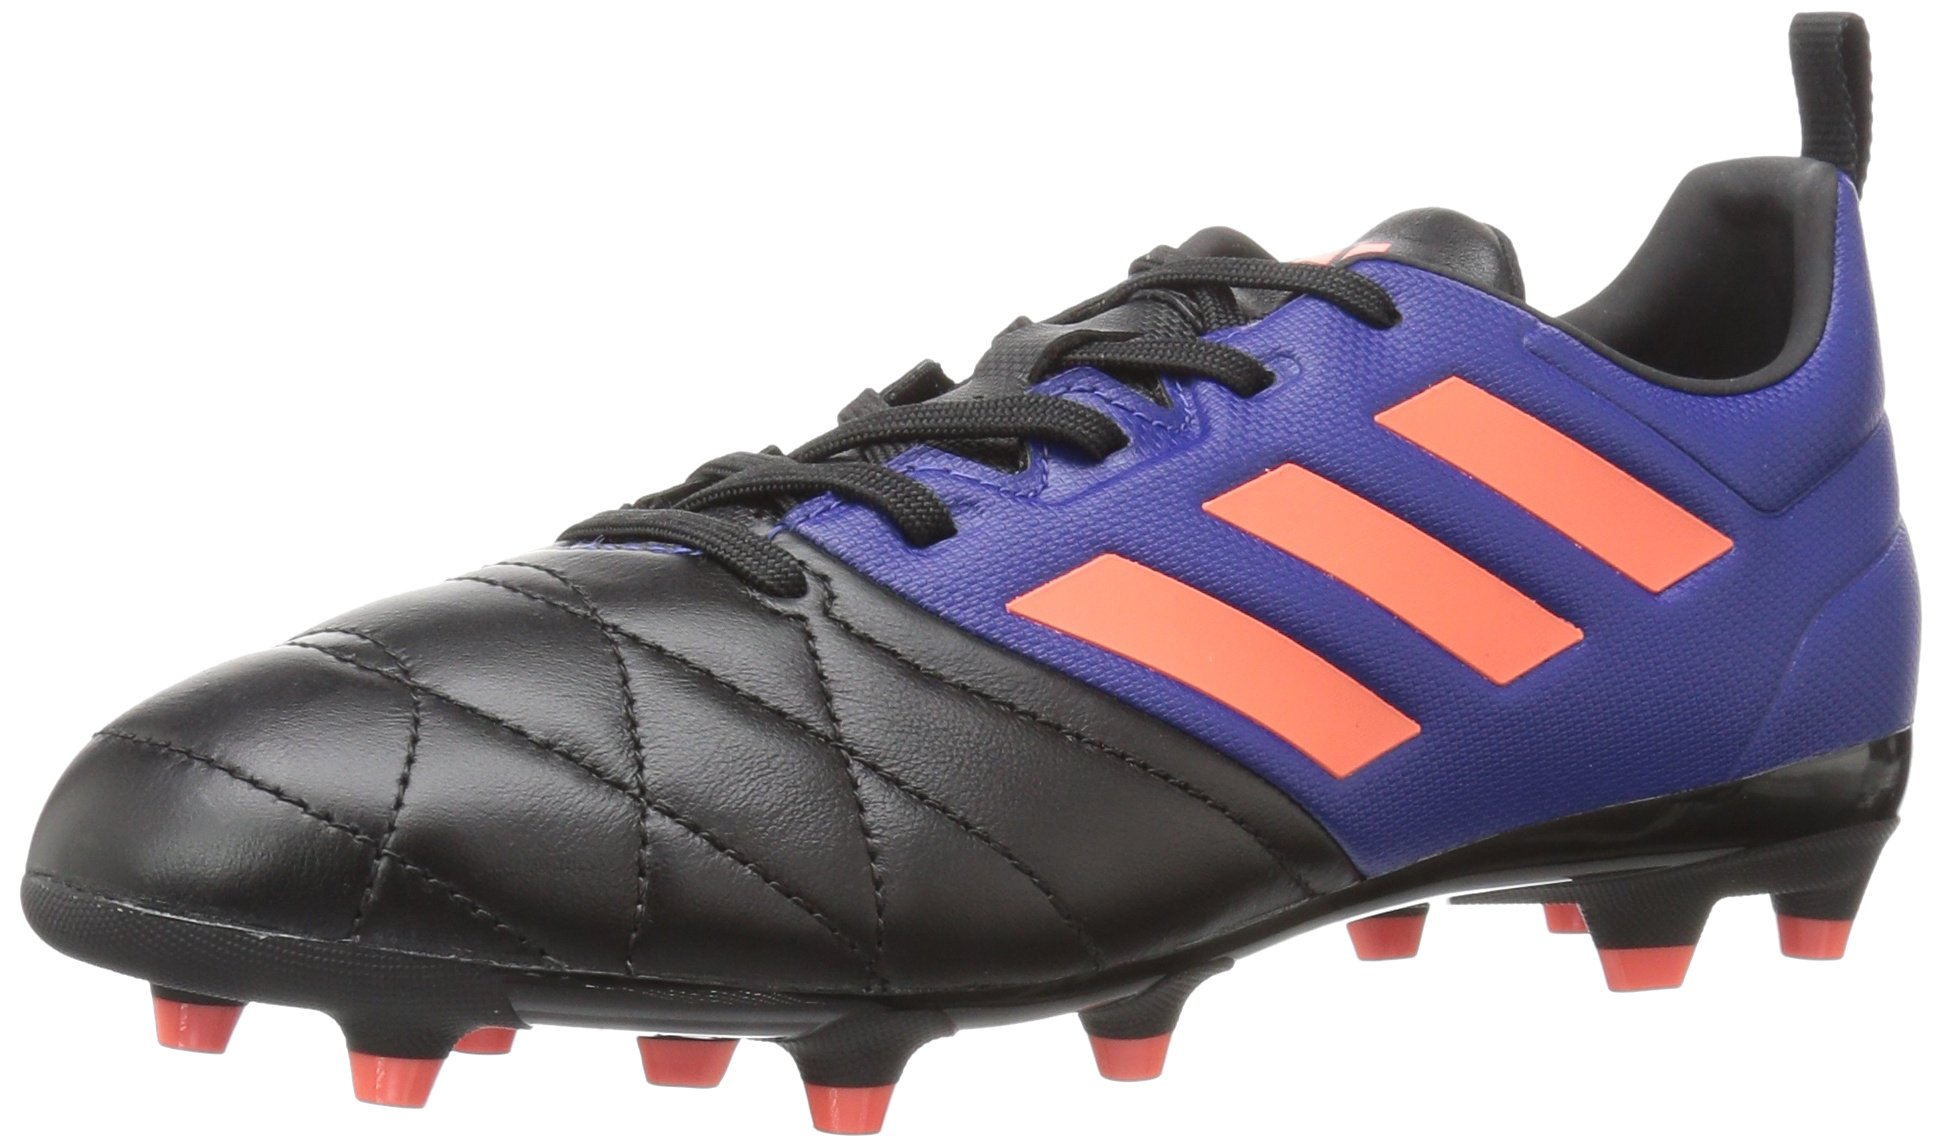 adidas Women's Ace 17.3 FG W Soccer Shoe, Mystery Ink/Easy Coral/Black, 8.5 Medium US